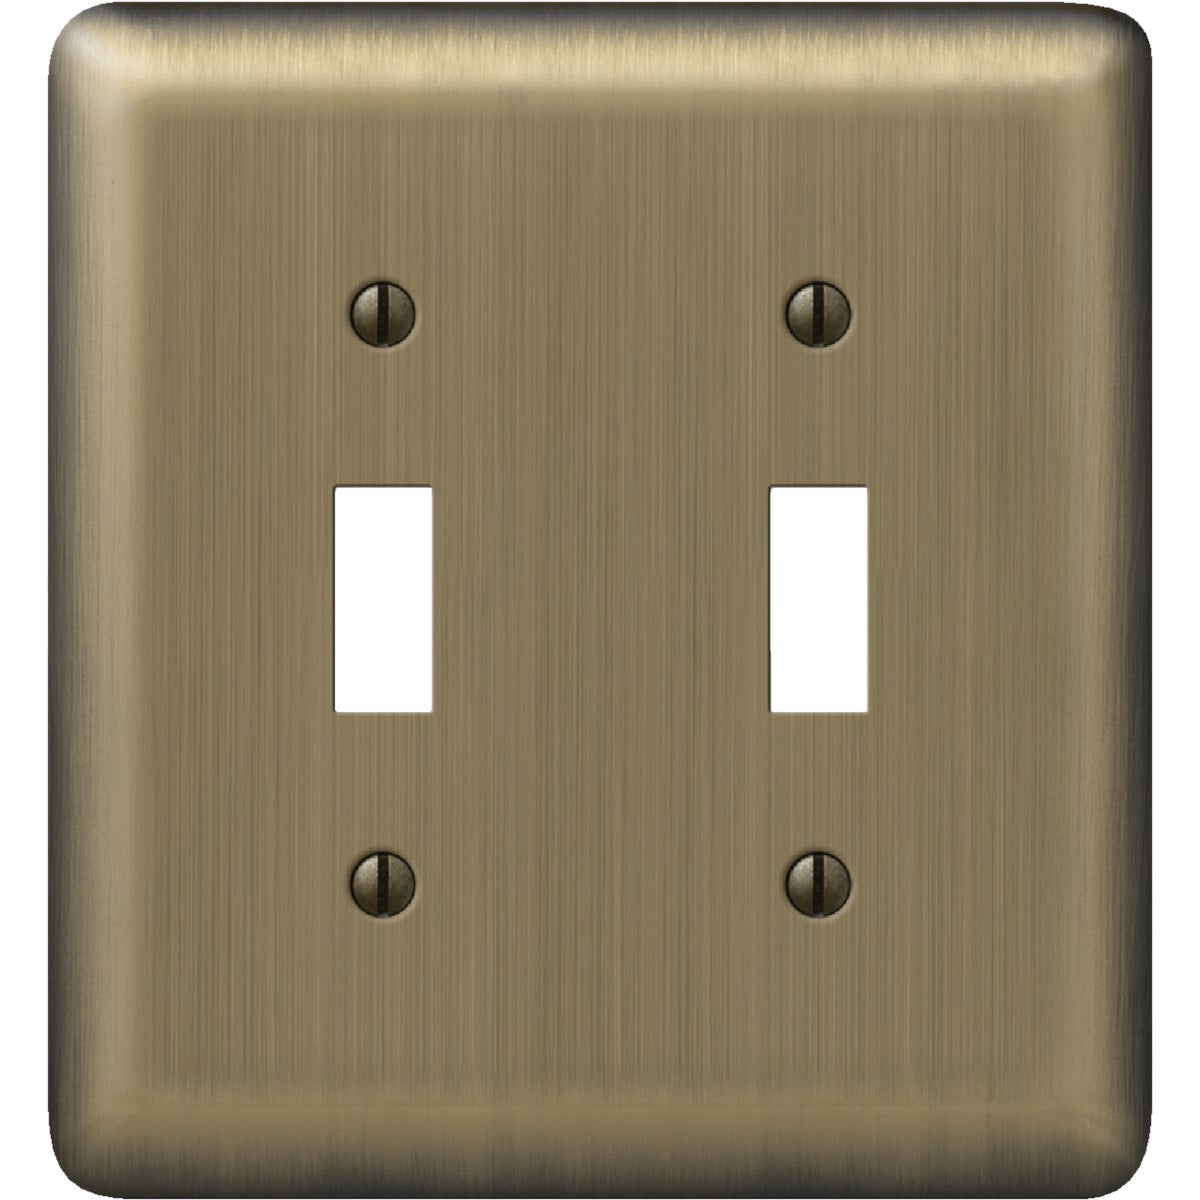 AB 2-TOGGLE WALL PLATE - 9AB102 by Jackson Deerfield Mf